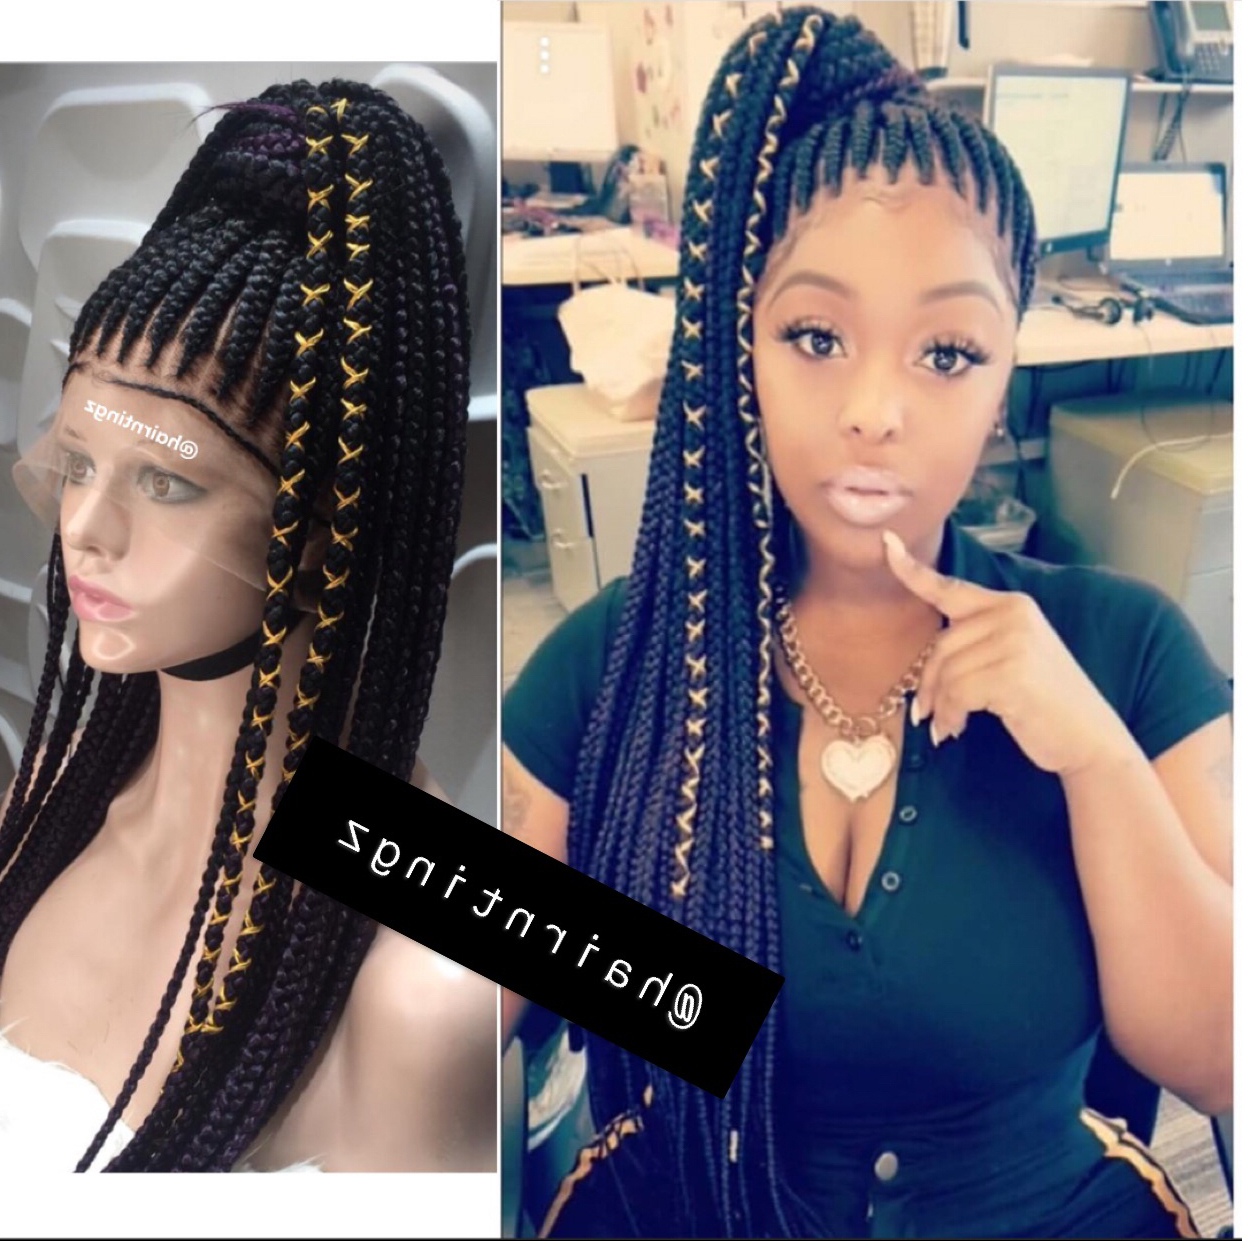 Jumbo High Ponytail ( Full Lace) Pertaining To Current High Ponytail Braid Hairstyles (View 15 of 20)